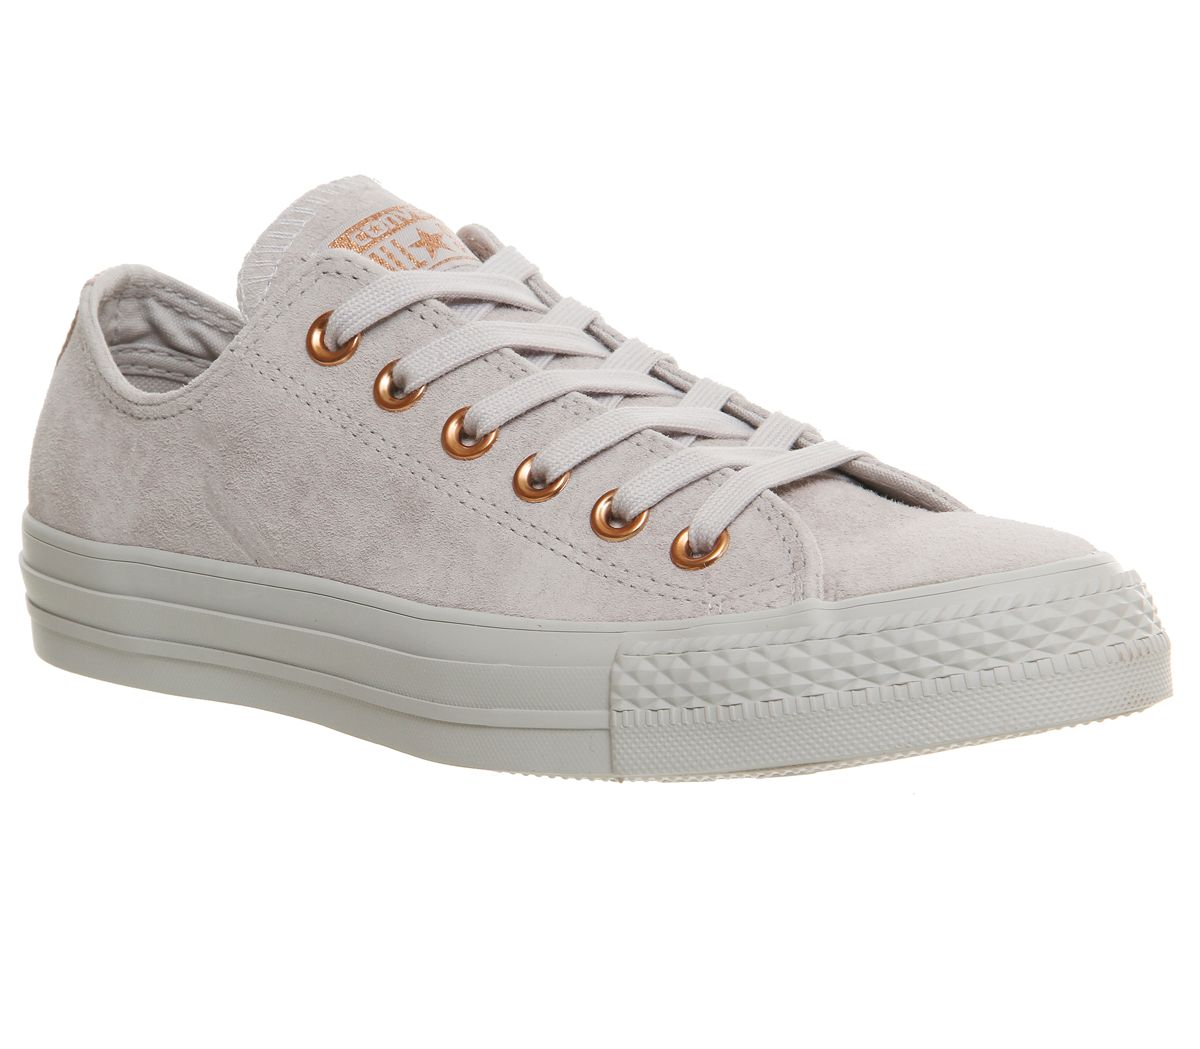 Converse Allstar low leather trainers, Grey